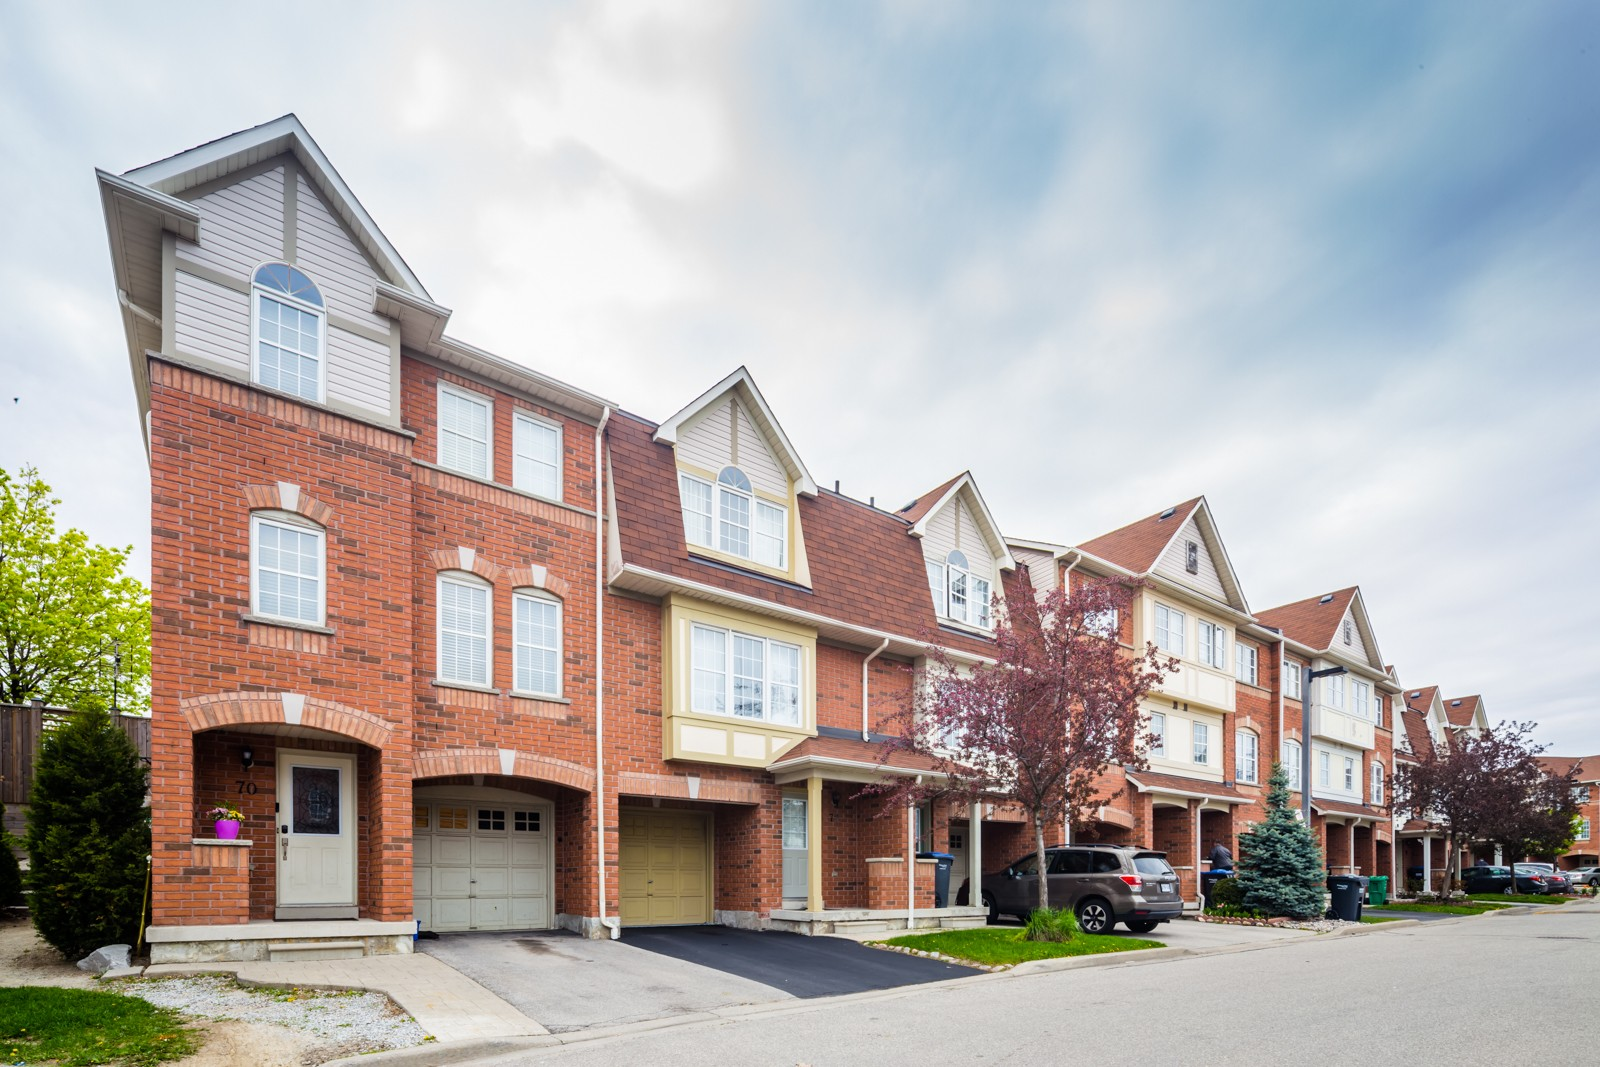 3030 Breakwater Court Townhouses at 3030 Breakwater Crt, Mississauga 1